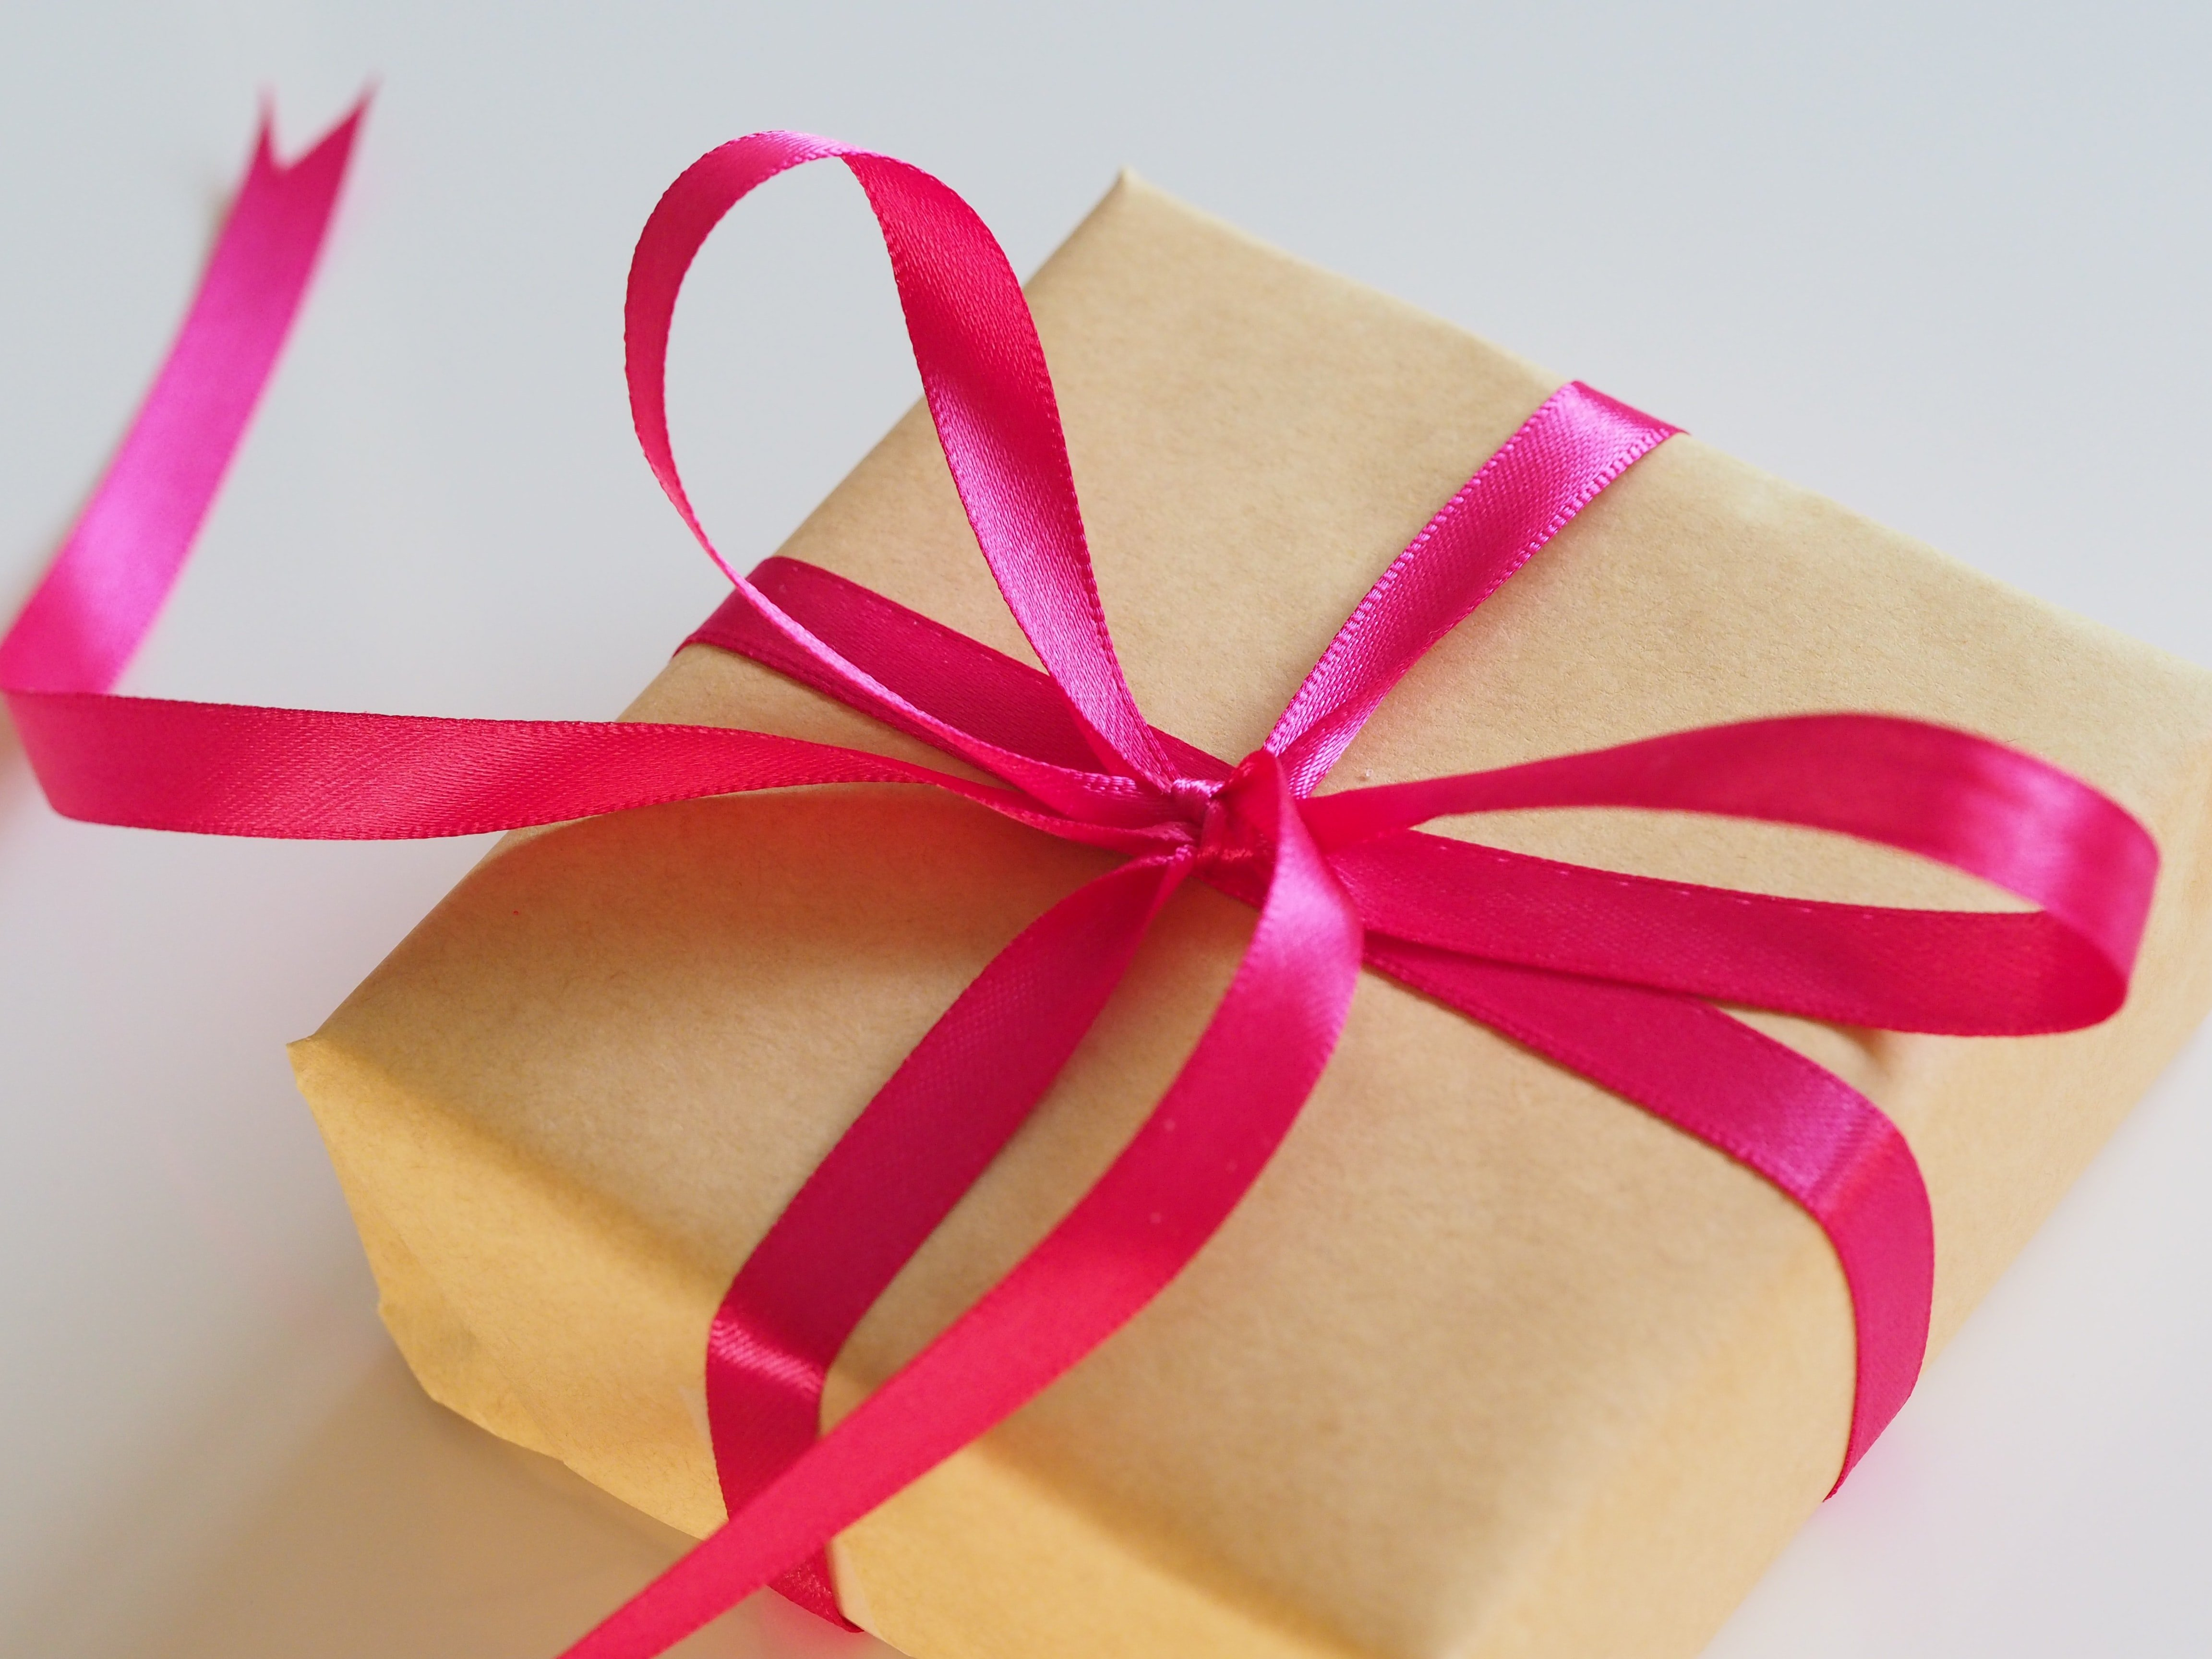 Brown gift box with a red ribbon | Source: Unplash